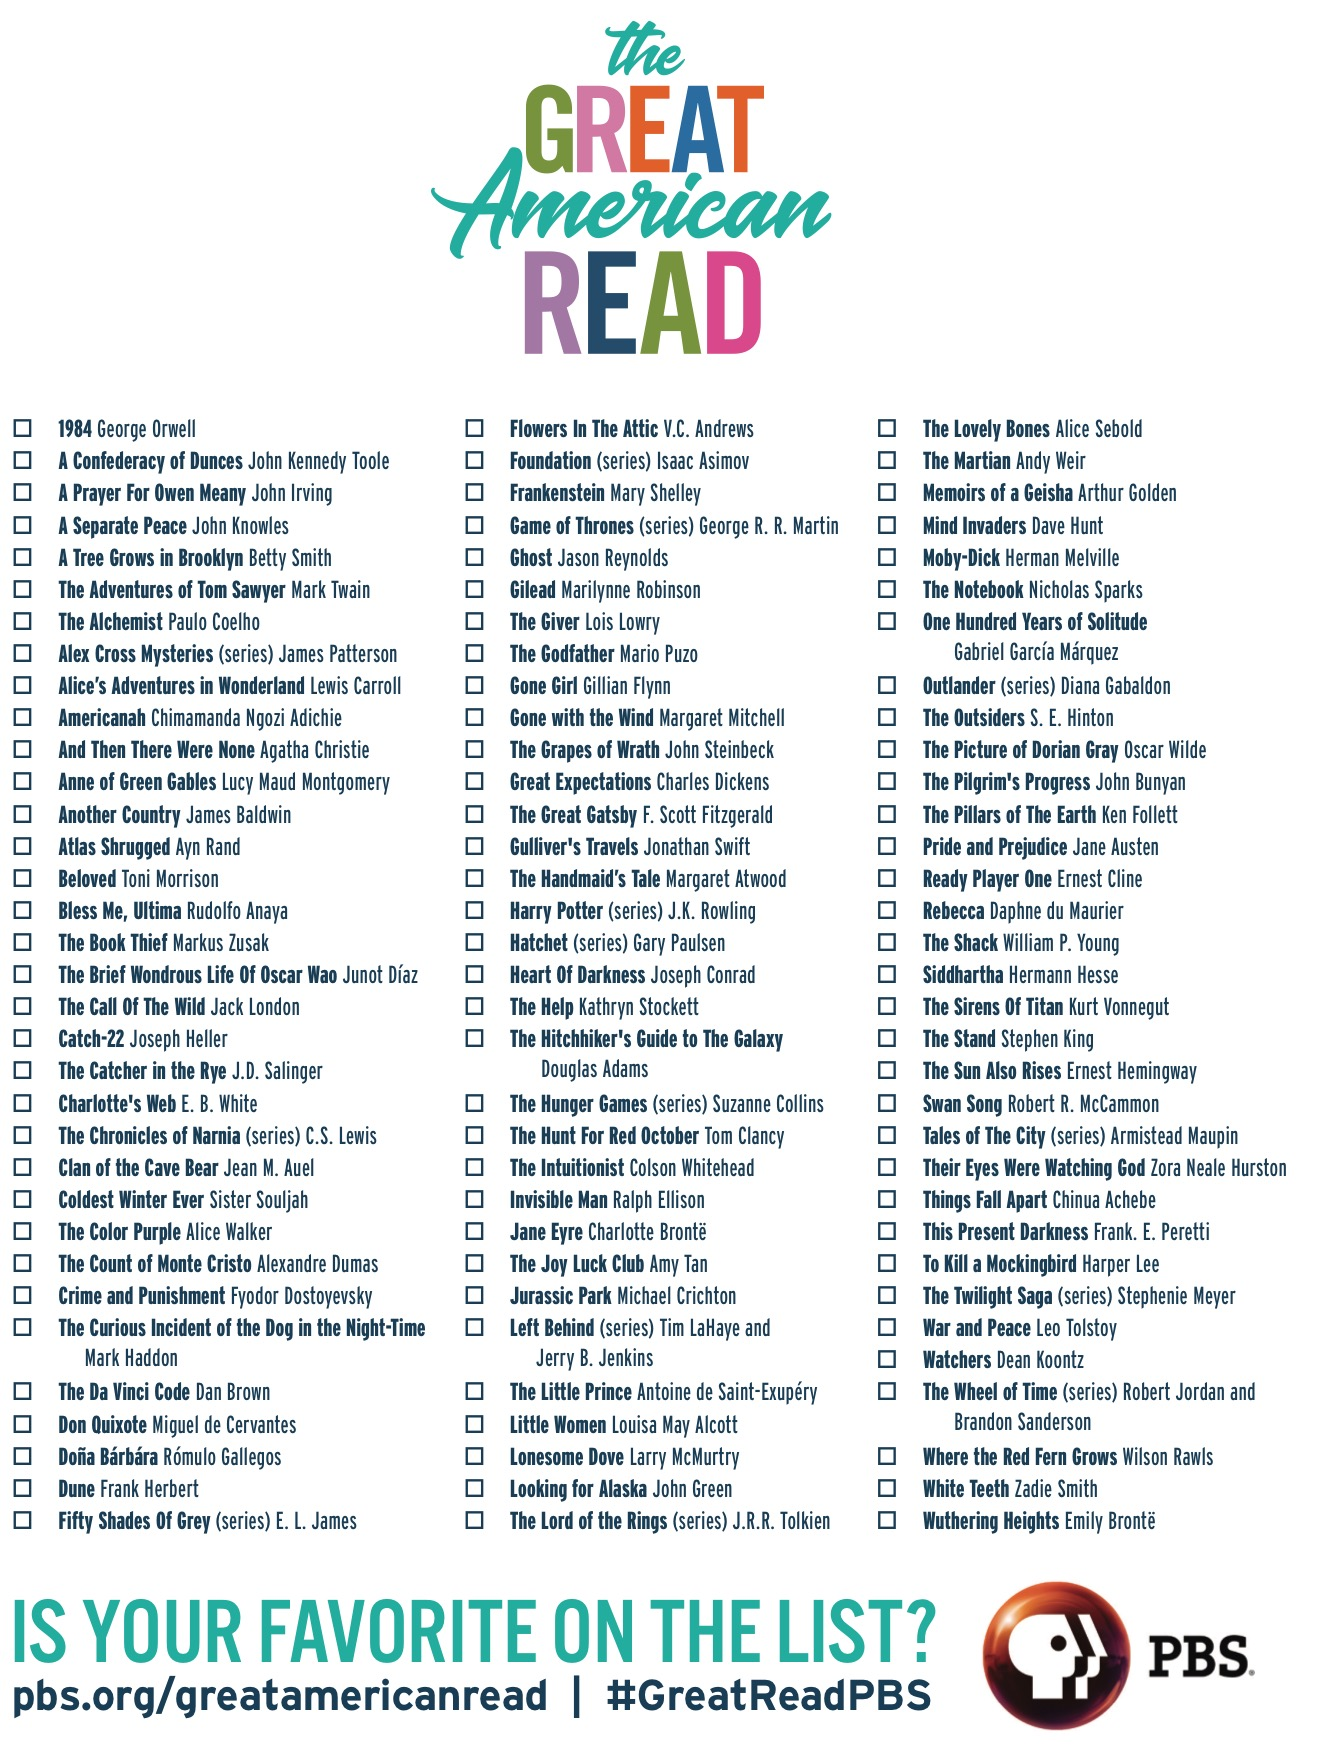 The Great American Read Print Your Checklist